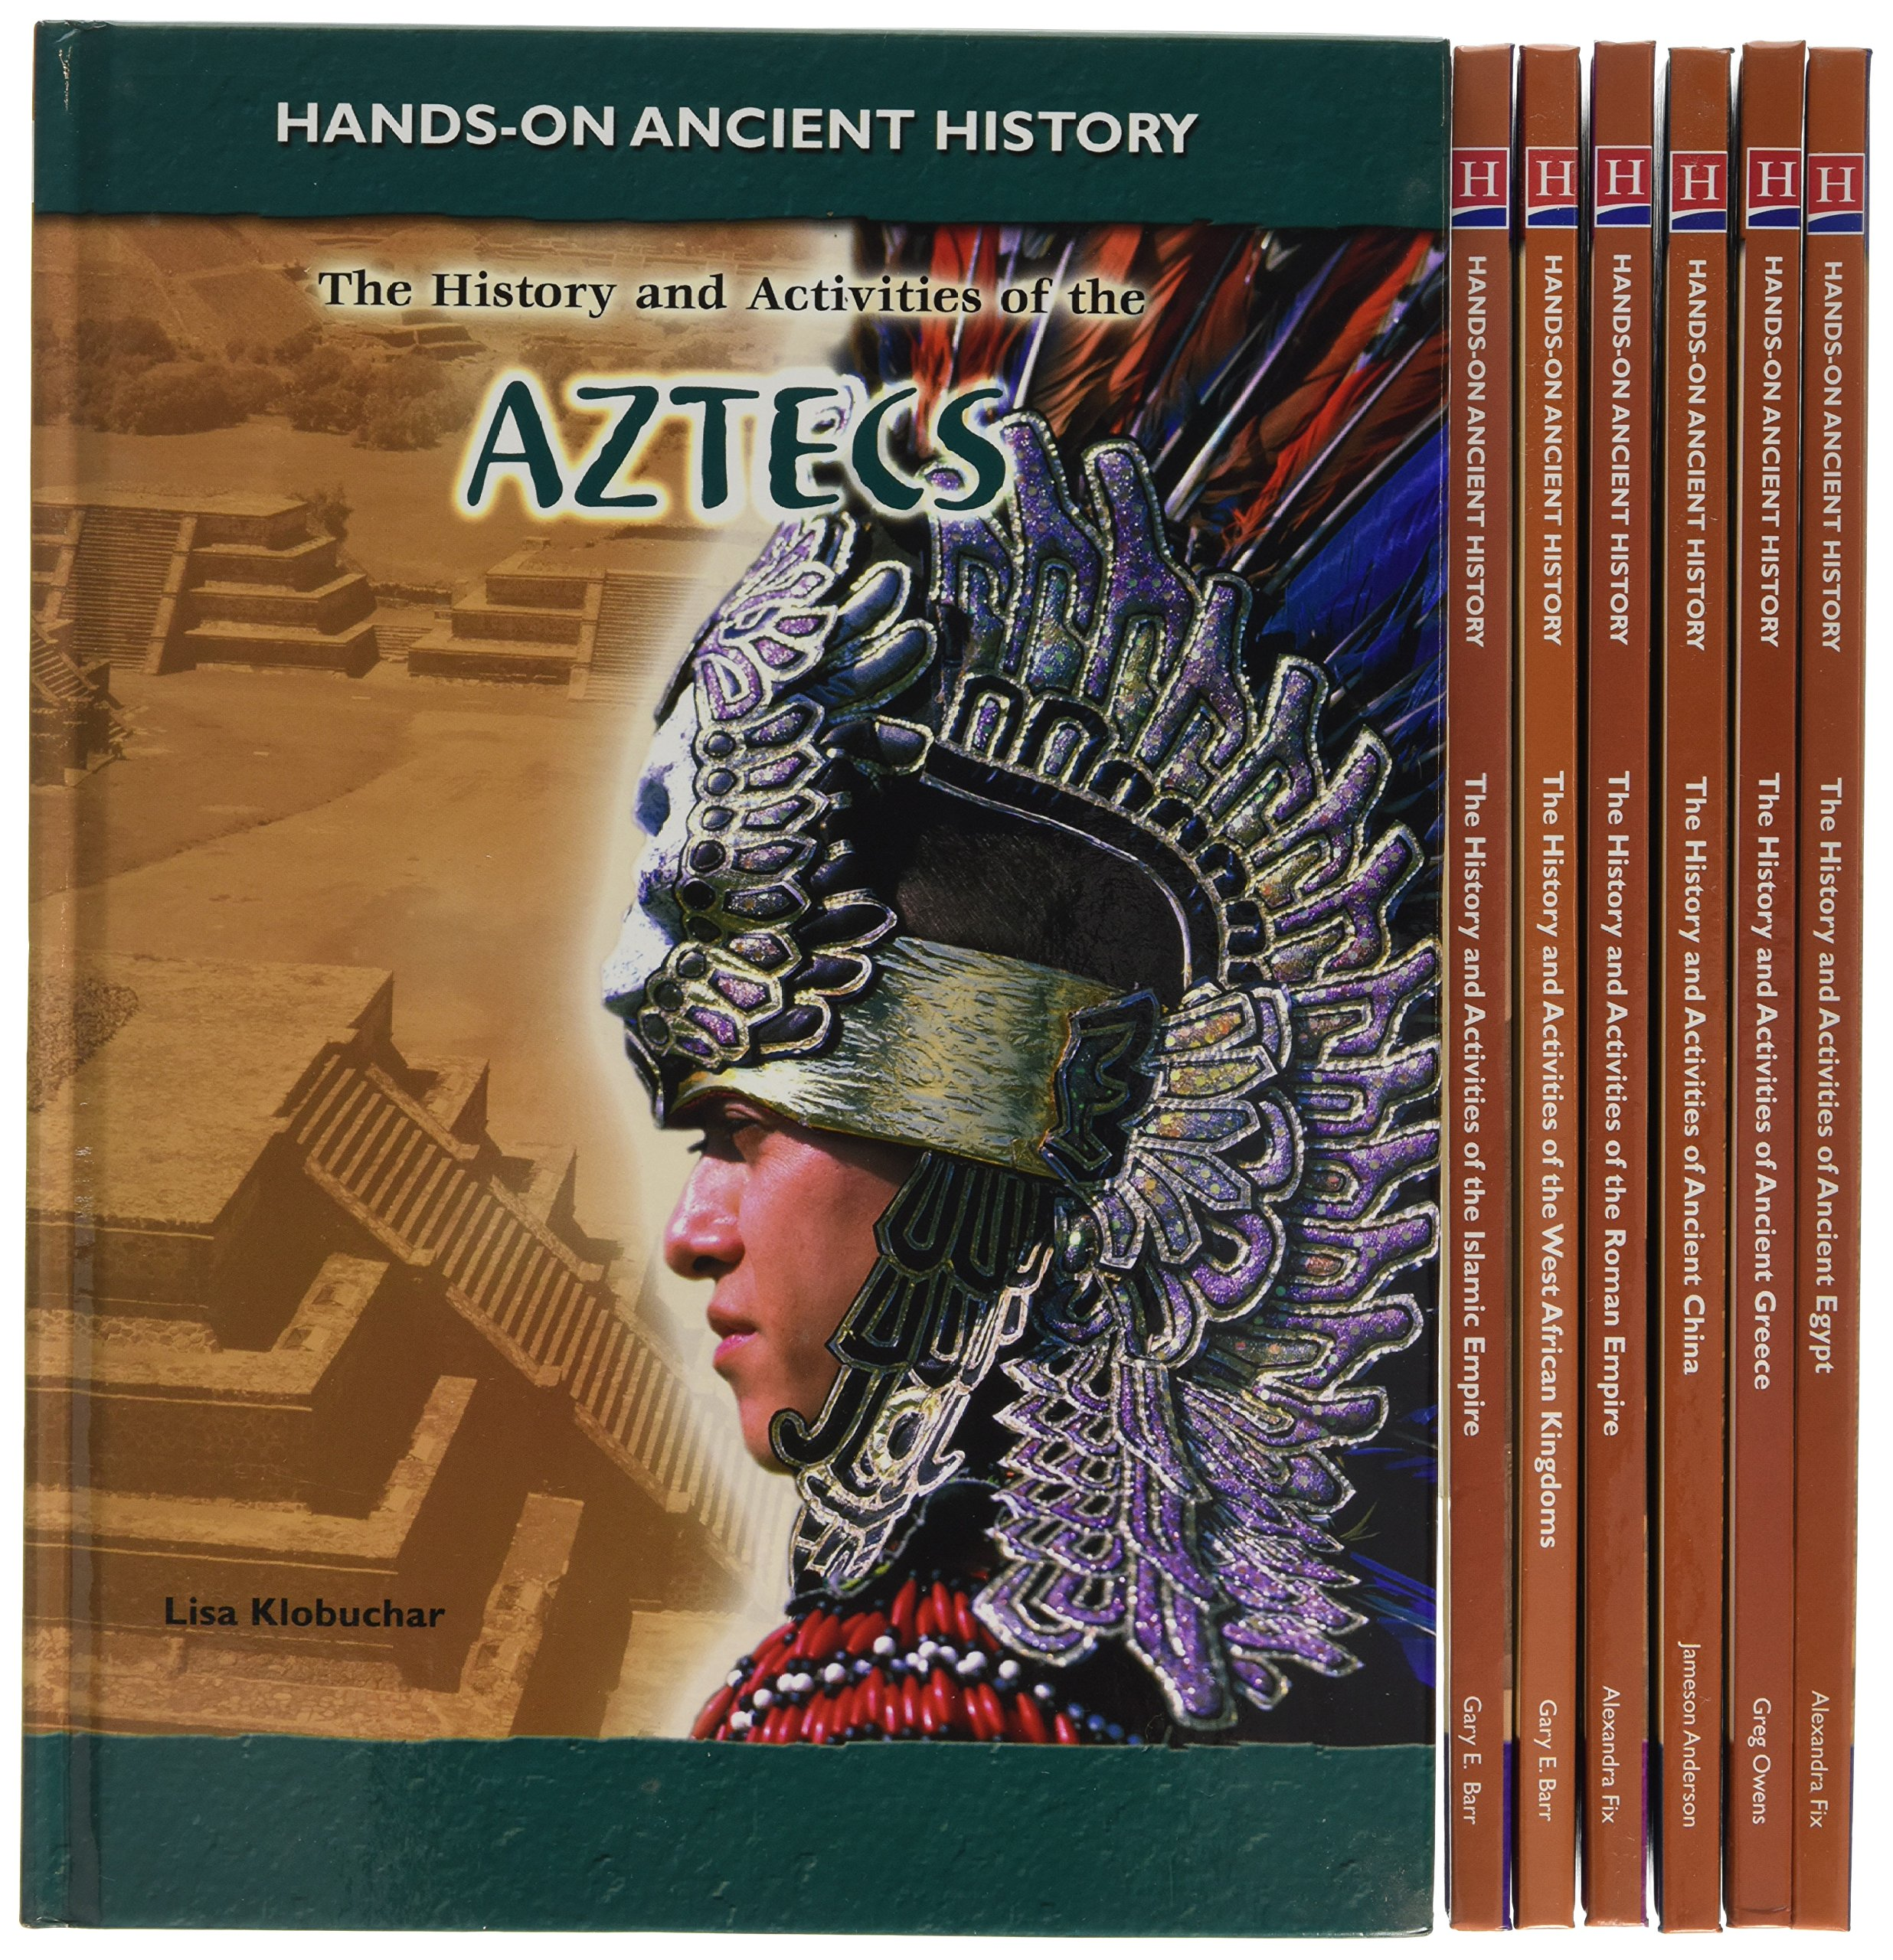 Hands-on Ancient History: Pack A : Pack A (Hands-on Ancient History): Pack A (Hands-on Ancient History) pdf epub